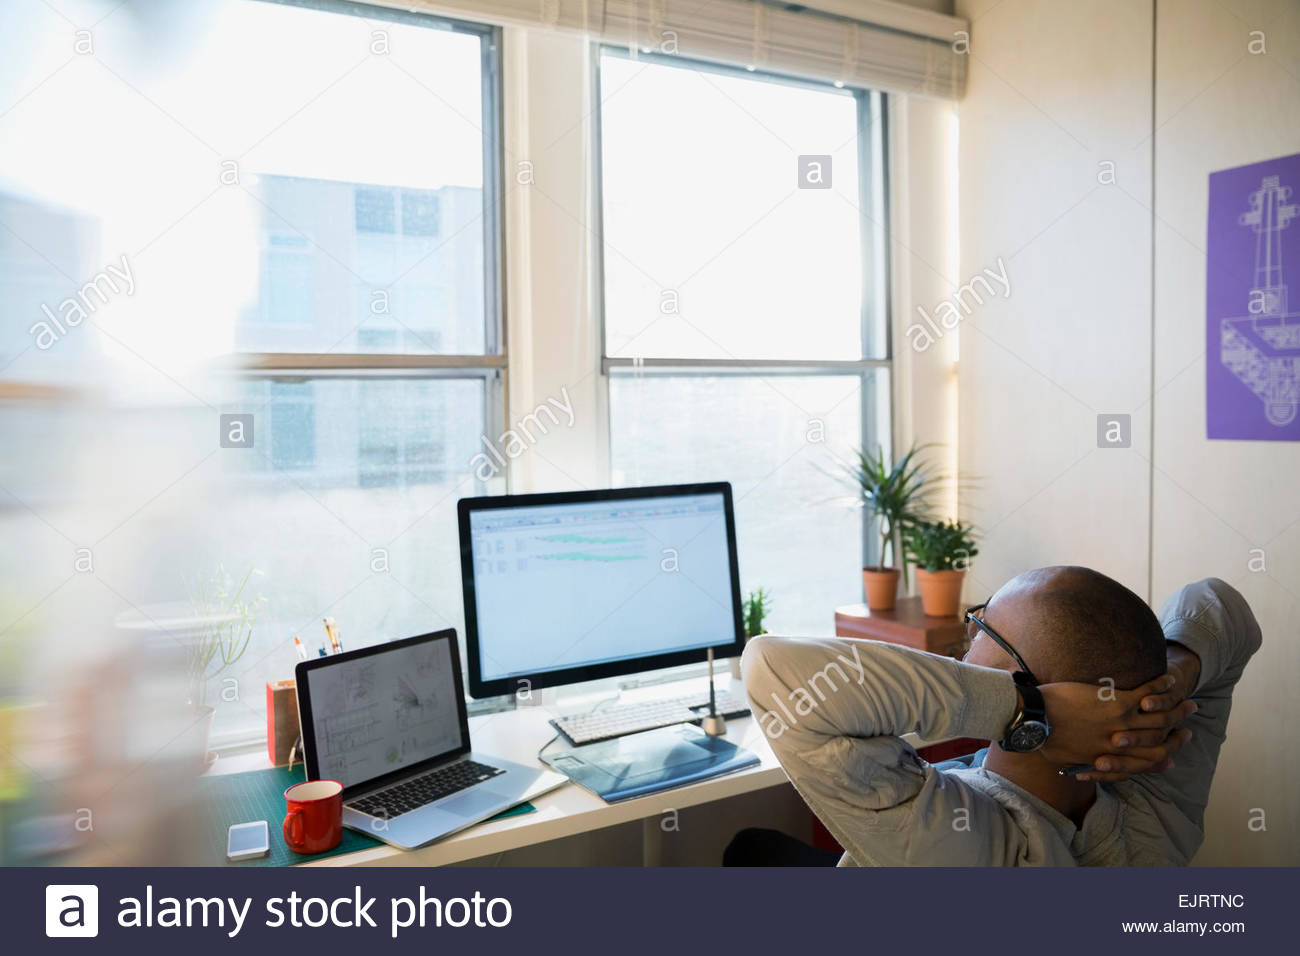 Designer with hands behind head in office - Stock Image